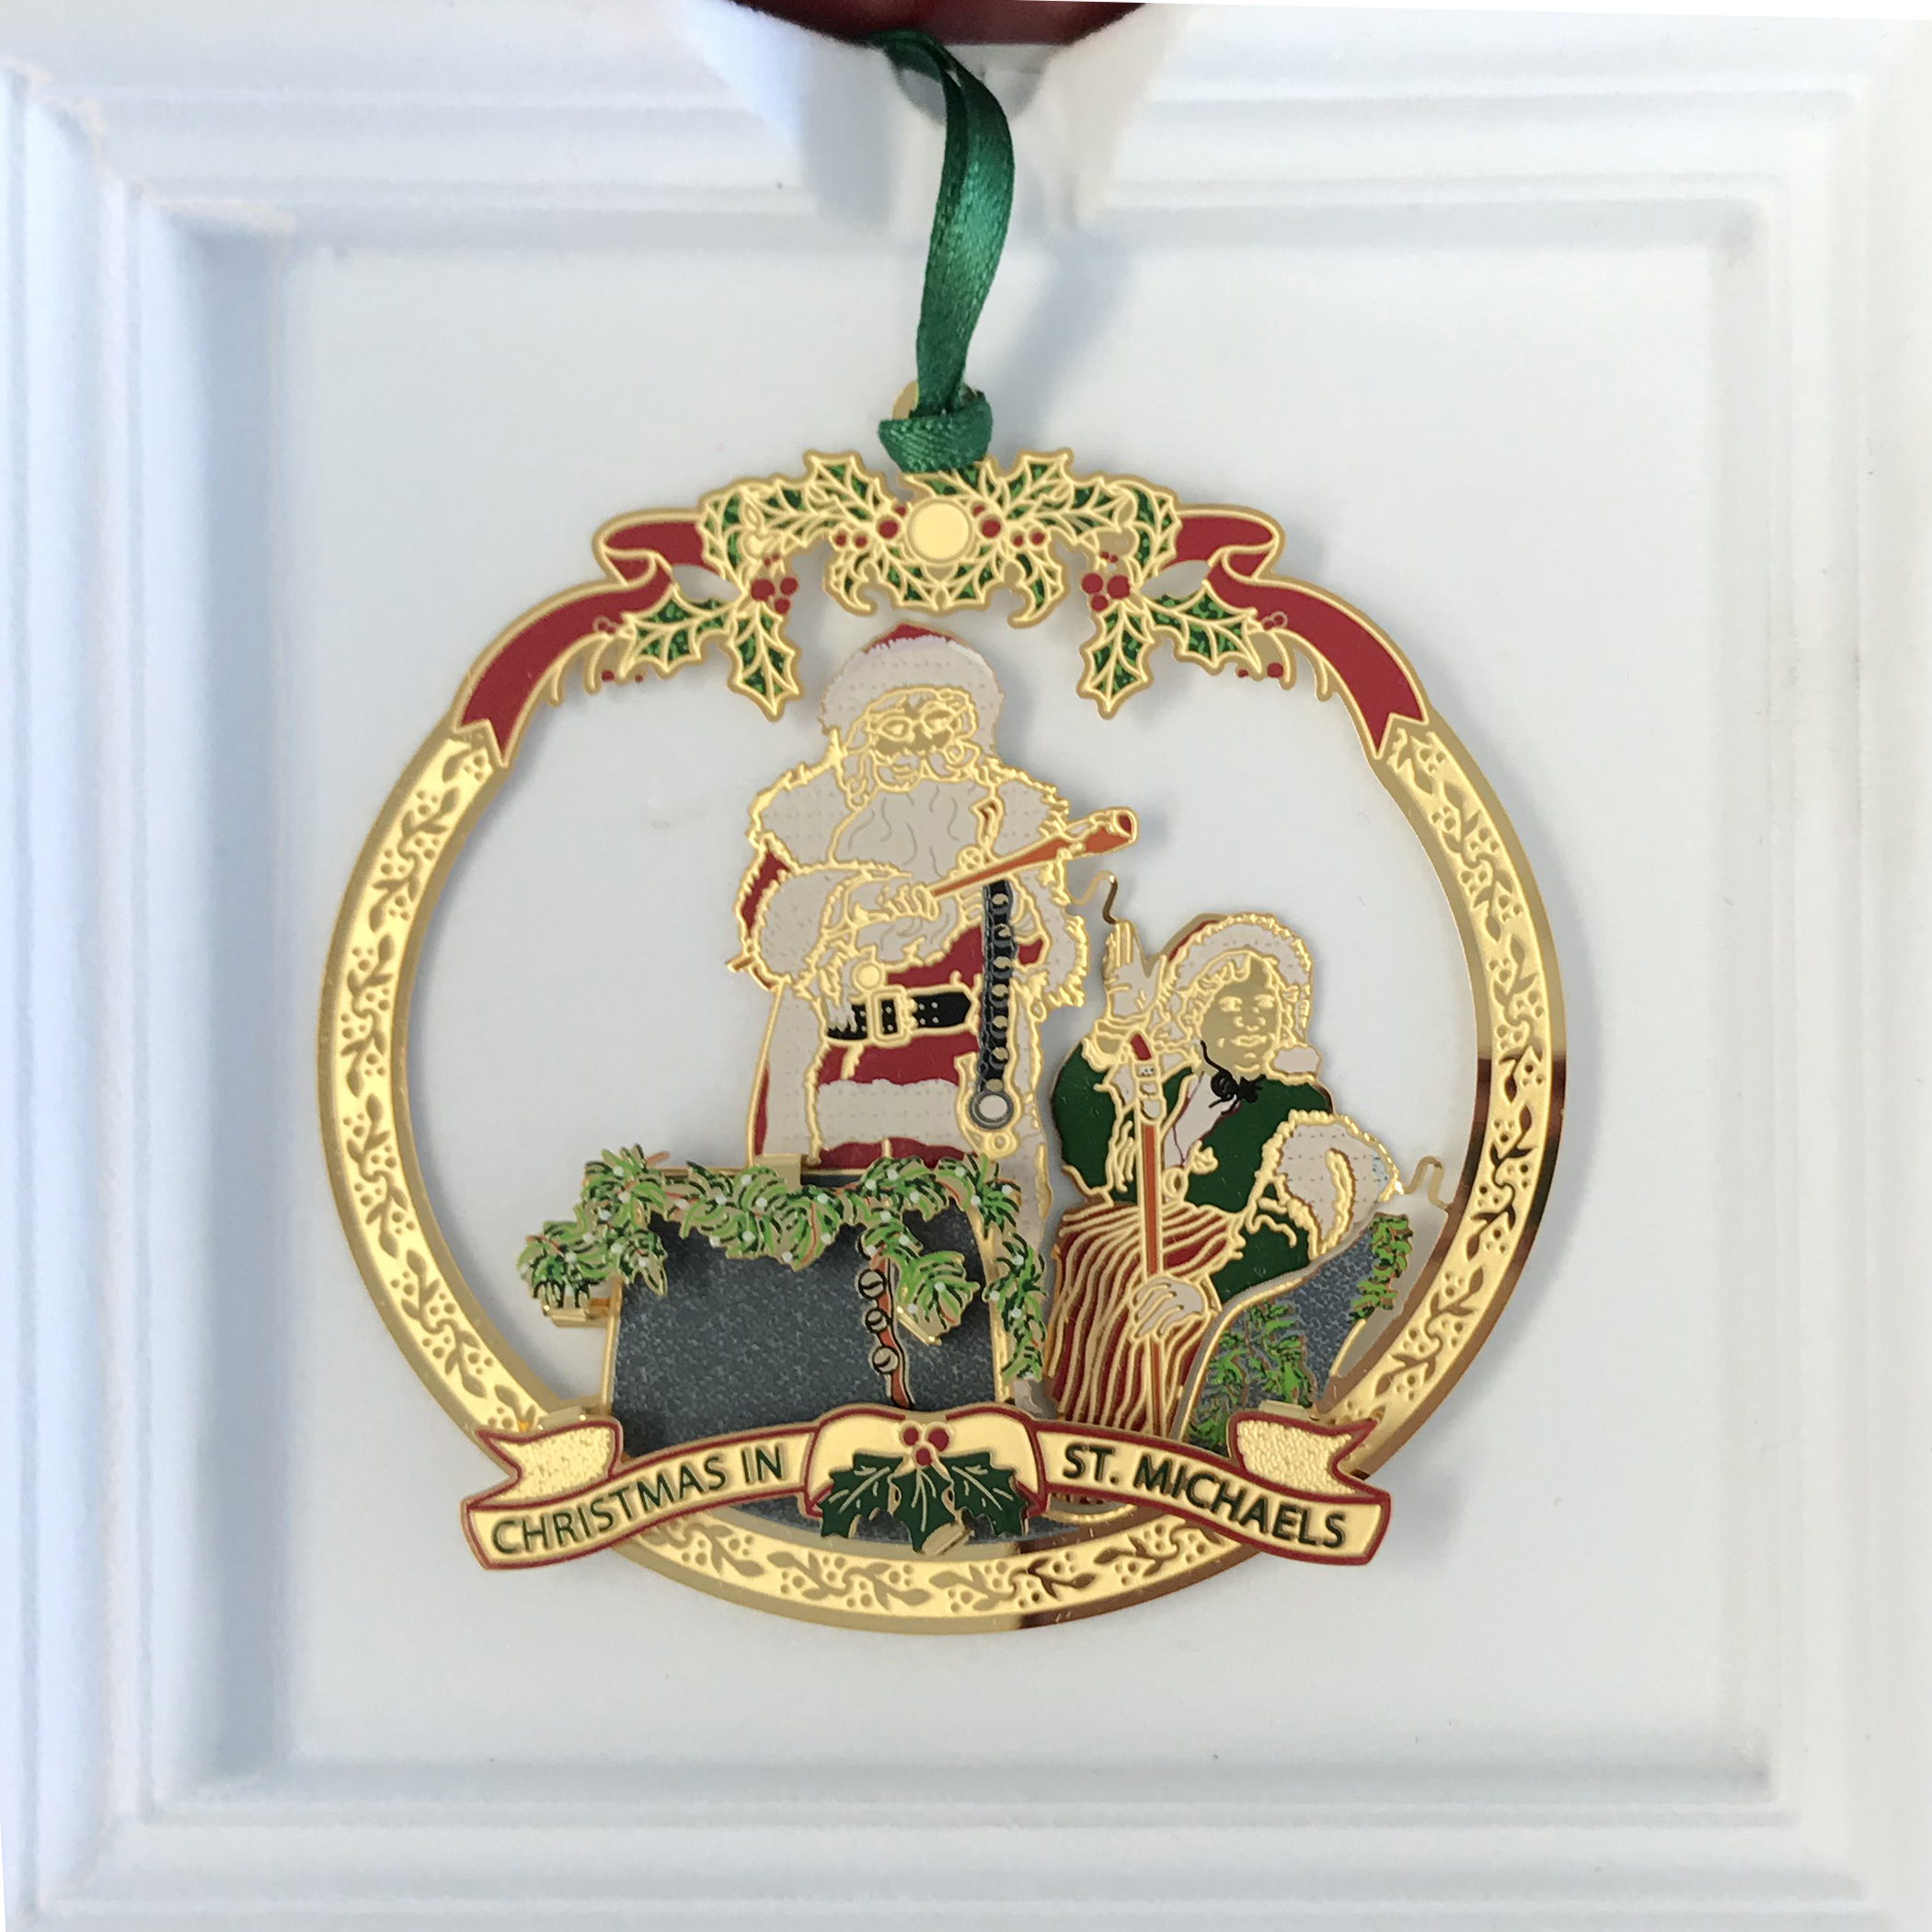 Michaels Christmas Ornaments 2019 Ornaments | Christmas In St. Michaels